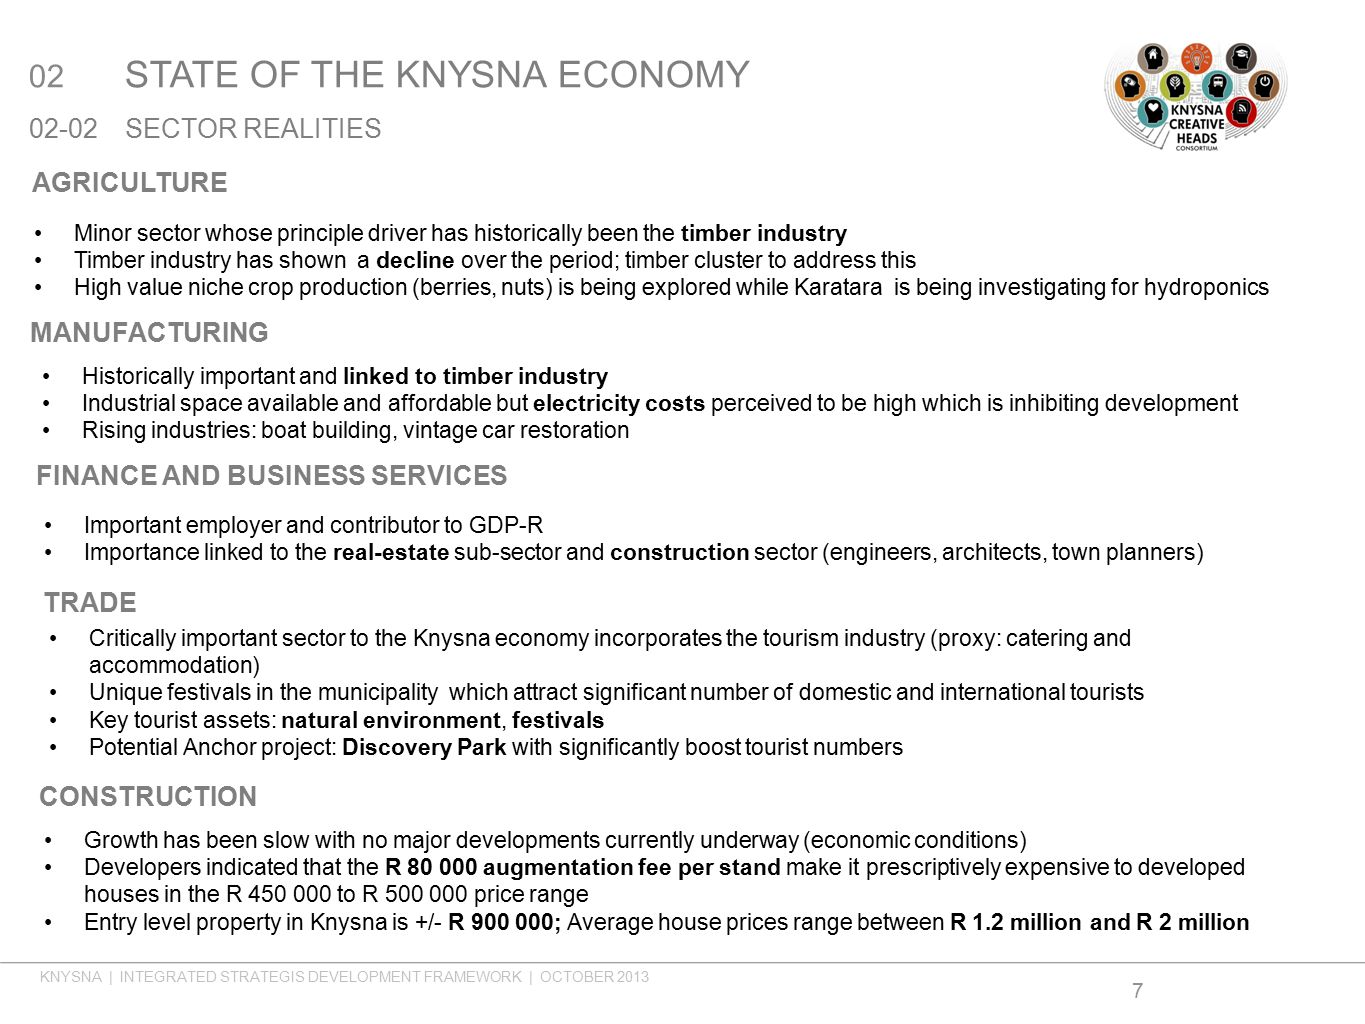 02 STATE OF THE KNYSNA ECONOMY 02-02SECTOR REALITIES 7 AGRICULTURE MANUFACTURING Minor sector whose principle driver has historically been the timber industry Timber industry has shown a decline over the period; timber cluster to address this High value niche crop production (berries, nuts) is being explored while Karatara is being investigating for hydroponics Historically important and linked to timber industry Industrial space available and affordable but electricity costs perceived to be high which is inhibiting development Rising industries: boat building, vintage car restoration FINANCE AND BUSINESS SERVICES Important employer and contributor to GDP-R Importance linked to the real-estate sub-sector and construction sector (engineers, architects, town planners) TRADE CONSTRUCTION Growth has been slow with no major developments currently underway (economic conditions) Developers indicated that the R 80 000 augmentation fee per stand make it prescriptively expensive to developed houses in the R 450 000 to R 500 000 price range Entry level property in Knysna is +/- R 900 000; Average house prices range between R 1.2 million and R 2 million Critically important sector to the Knysna economy incorporates the tourism industry (proxy: catering and accommodation) Unique festivals in the municipality which attract significant number of domestic and international tourists Key tourist assets: natural environment, festivals Potential Anchor project: Discovery Park with significantly boost tourist numbers KNYSNA | INTEGRATED STRATEGIS DEVELOPMENT FRAMEWORK | OCTOBER 2013